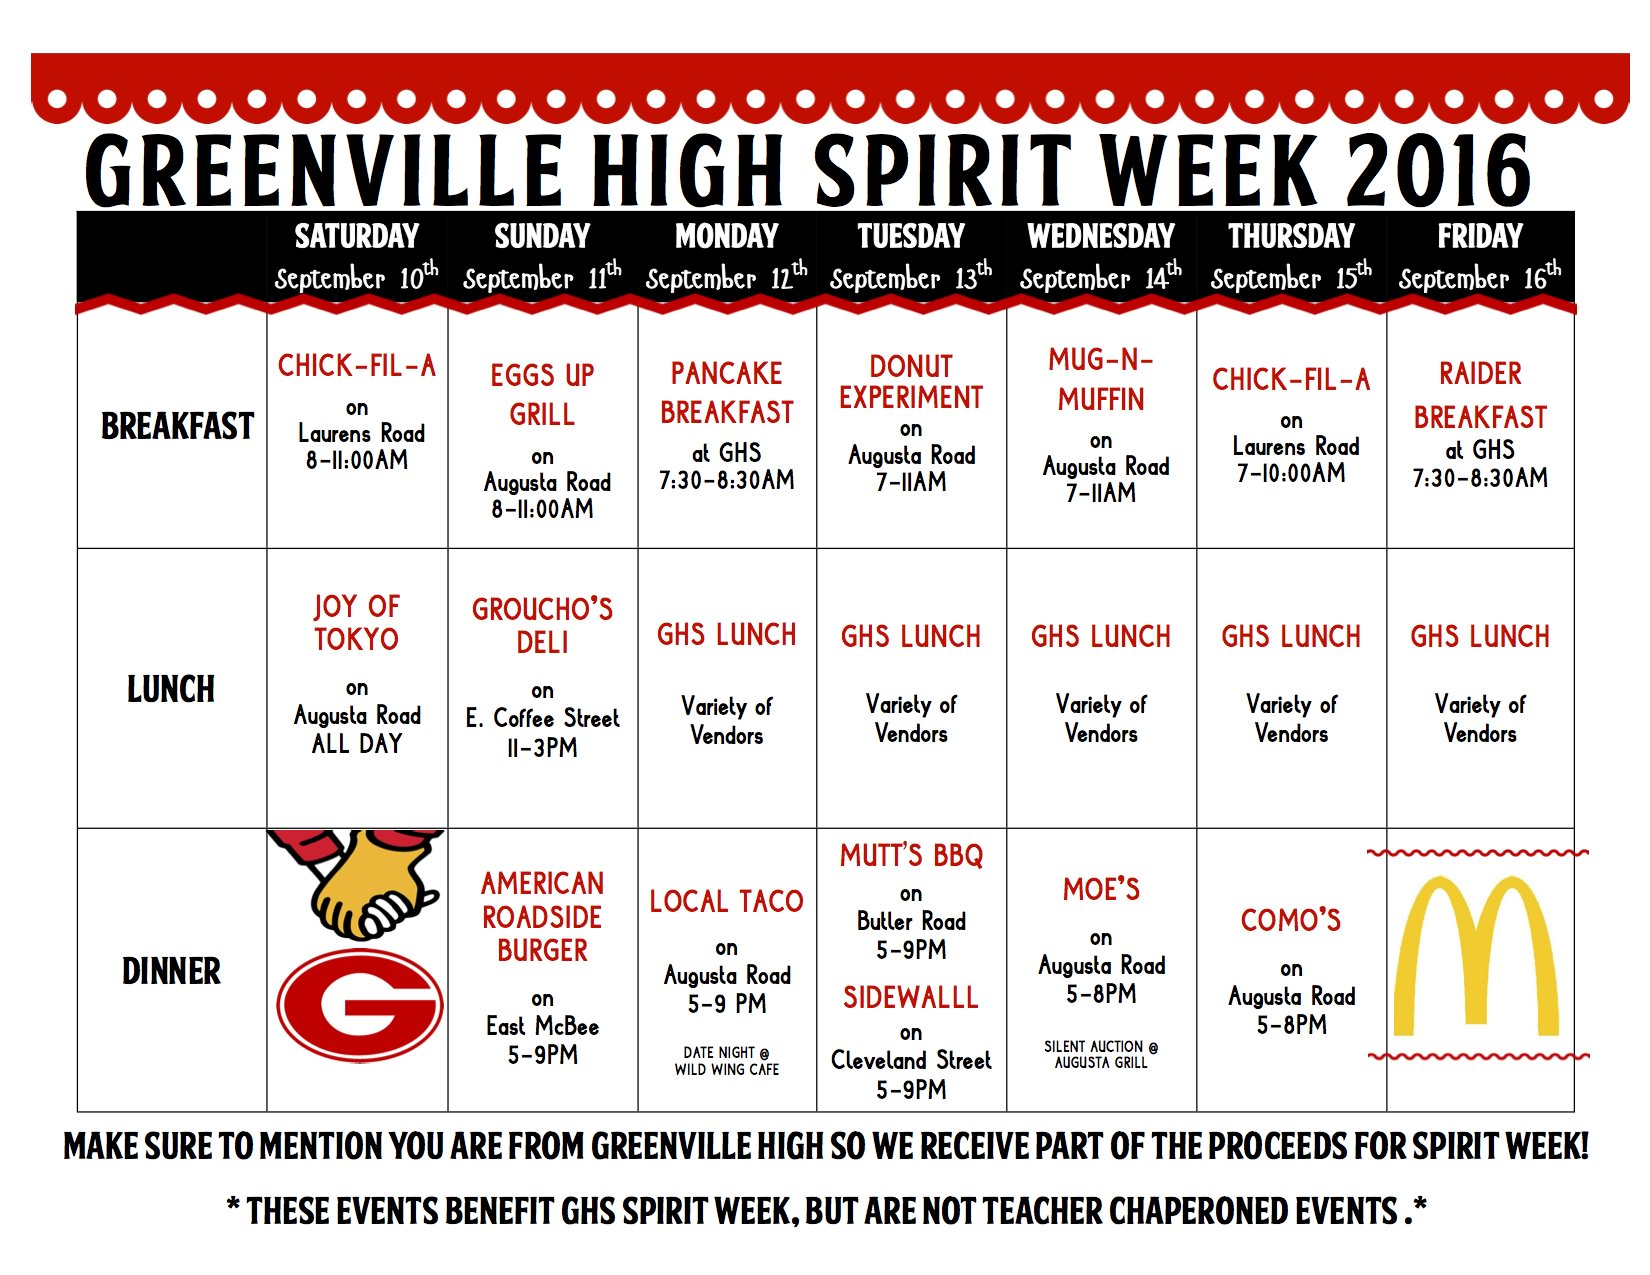 Greenville High School Spirit Week 2016 Ronald Mcdonald